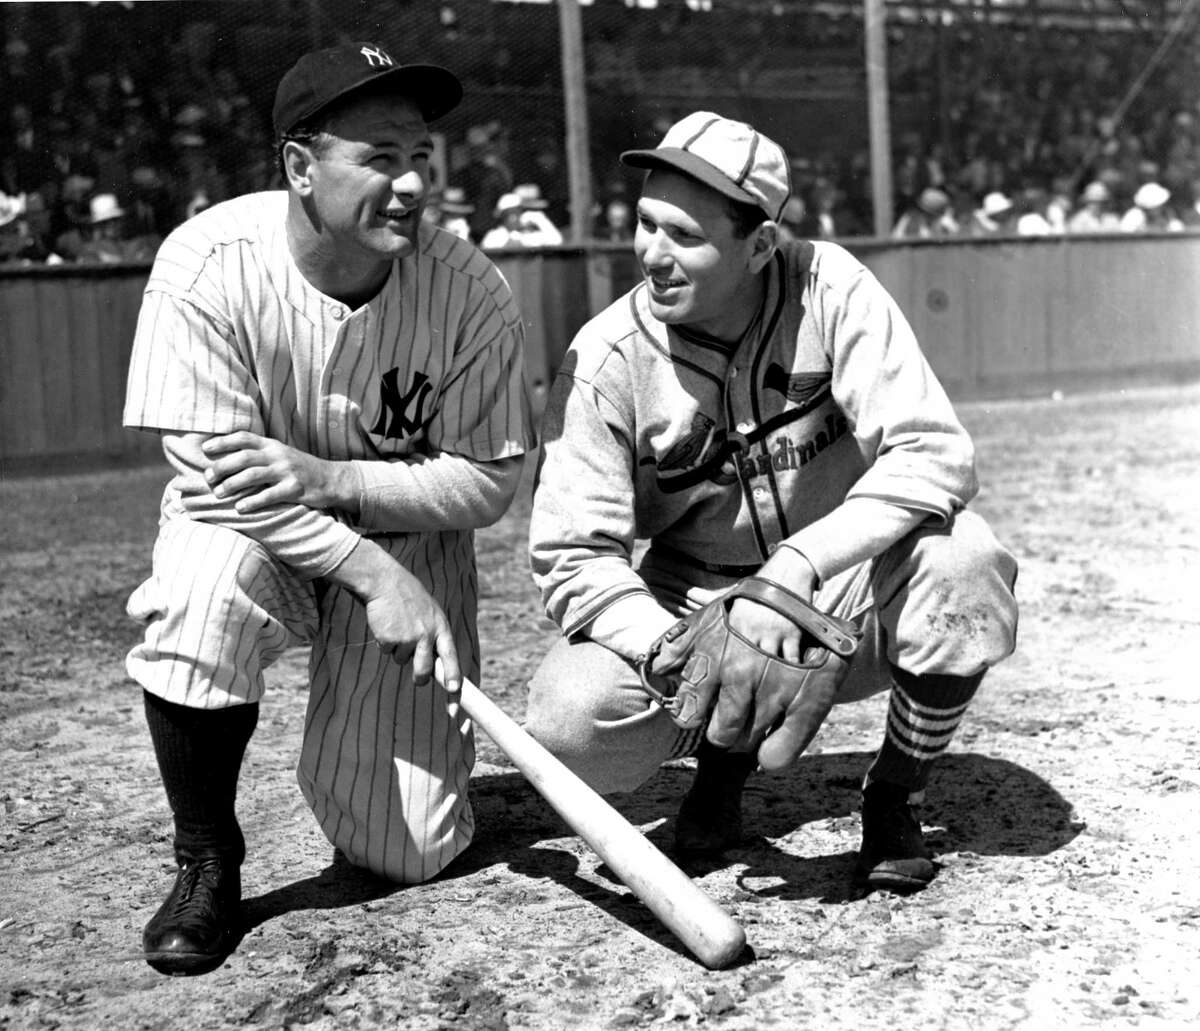 Lou Gehrig, left, of the New York Yankees, and pitcher Dizzy Dean, of the St. Louis Cardinals, compare notes on their 1937 hold-out figures during an exhibition game in St. Petersburg, Fl., April 2, 1937. (AP Photo)